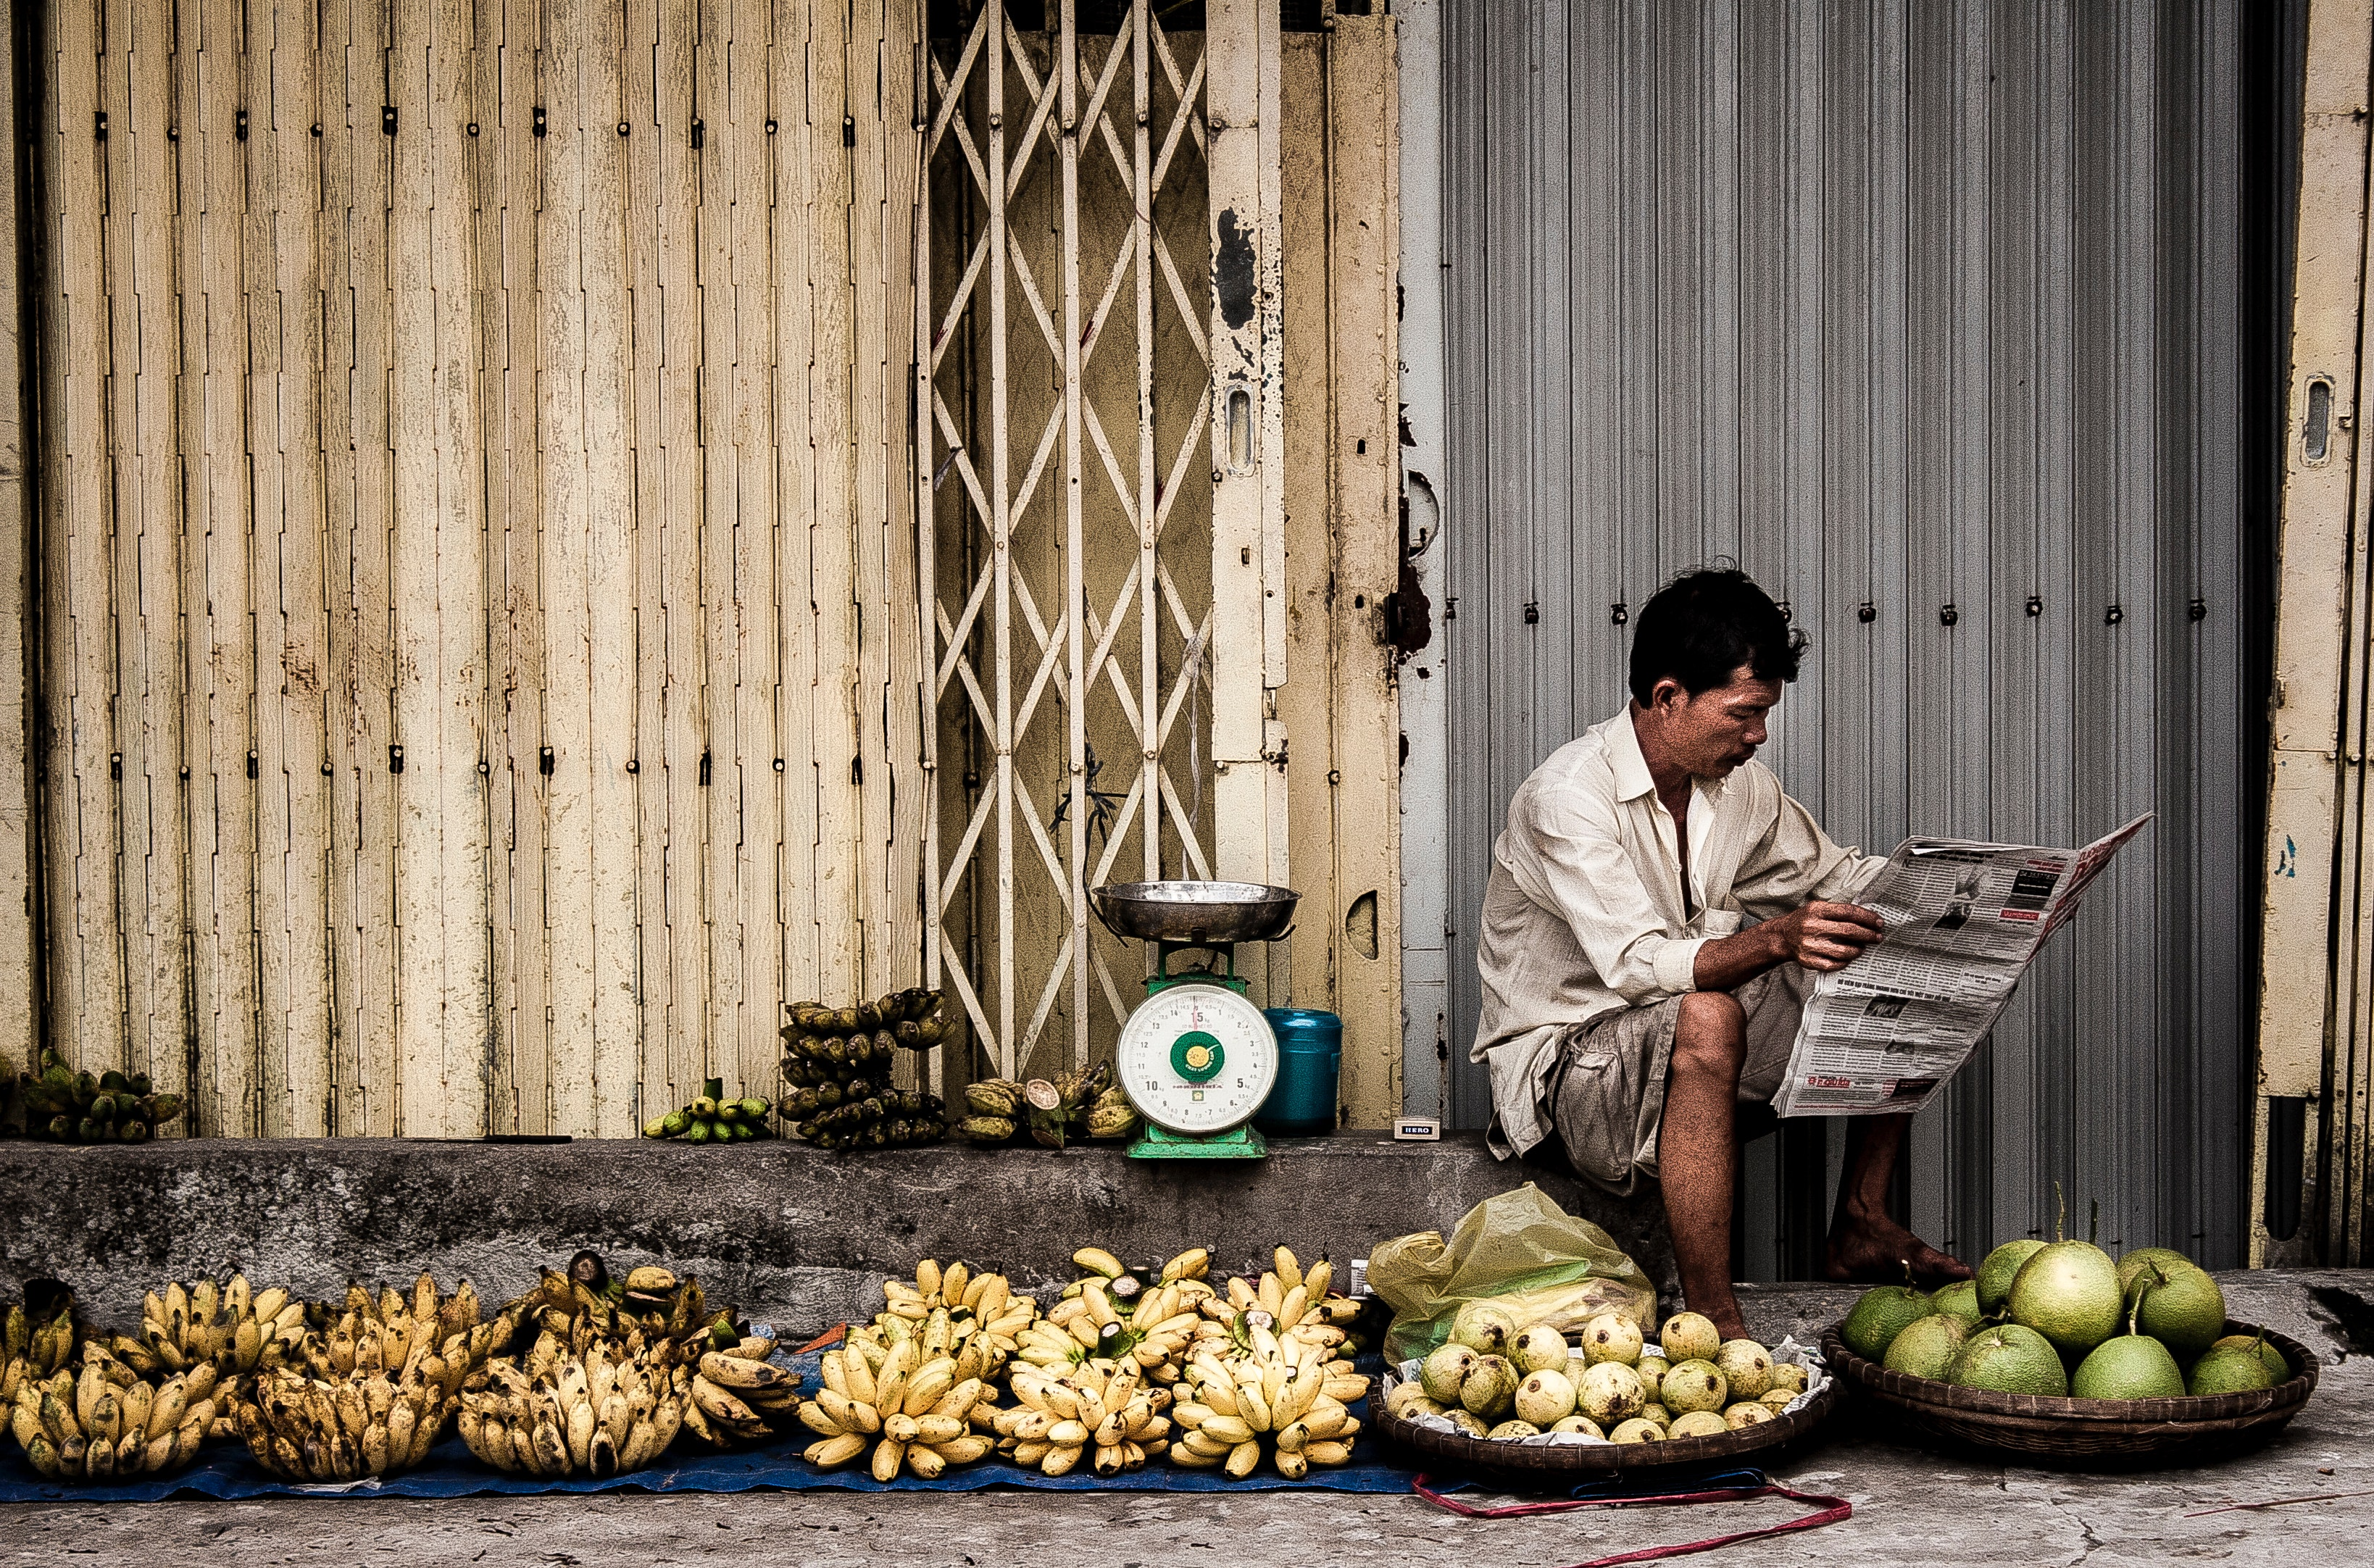 Man sitting near fruits photo